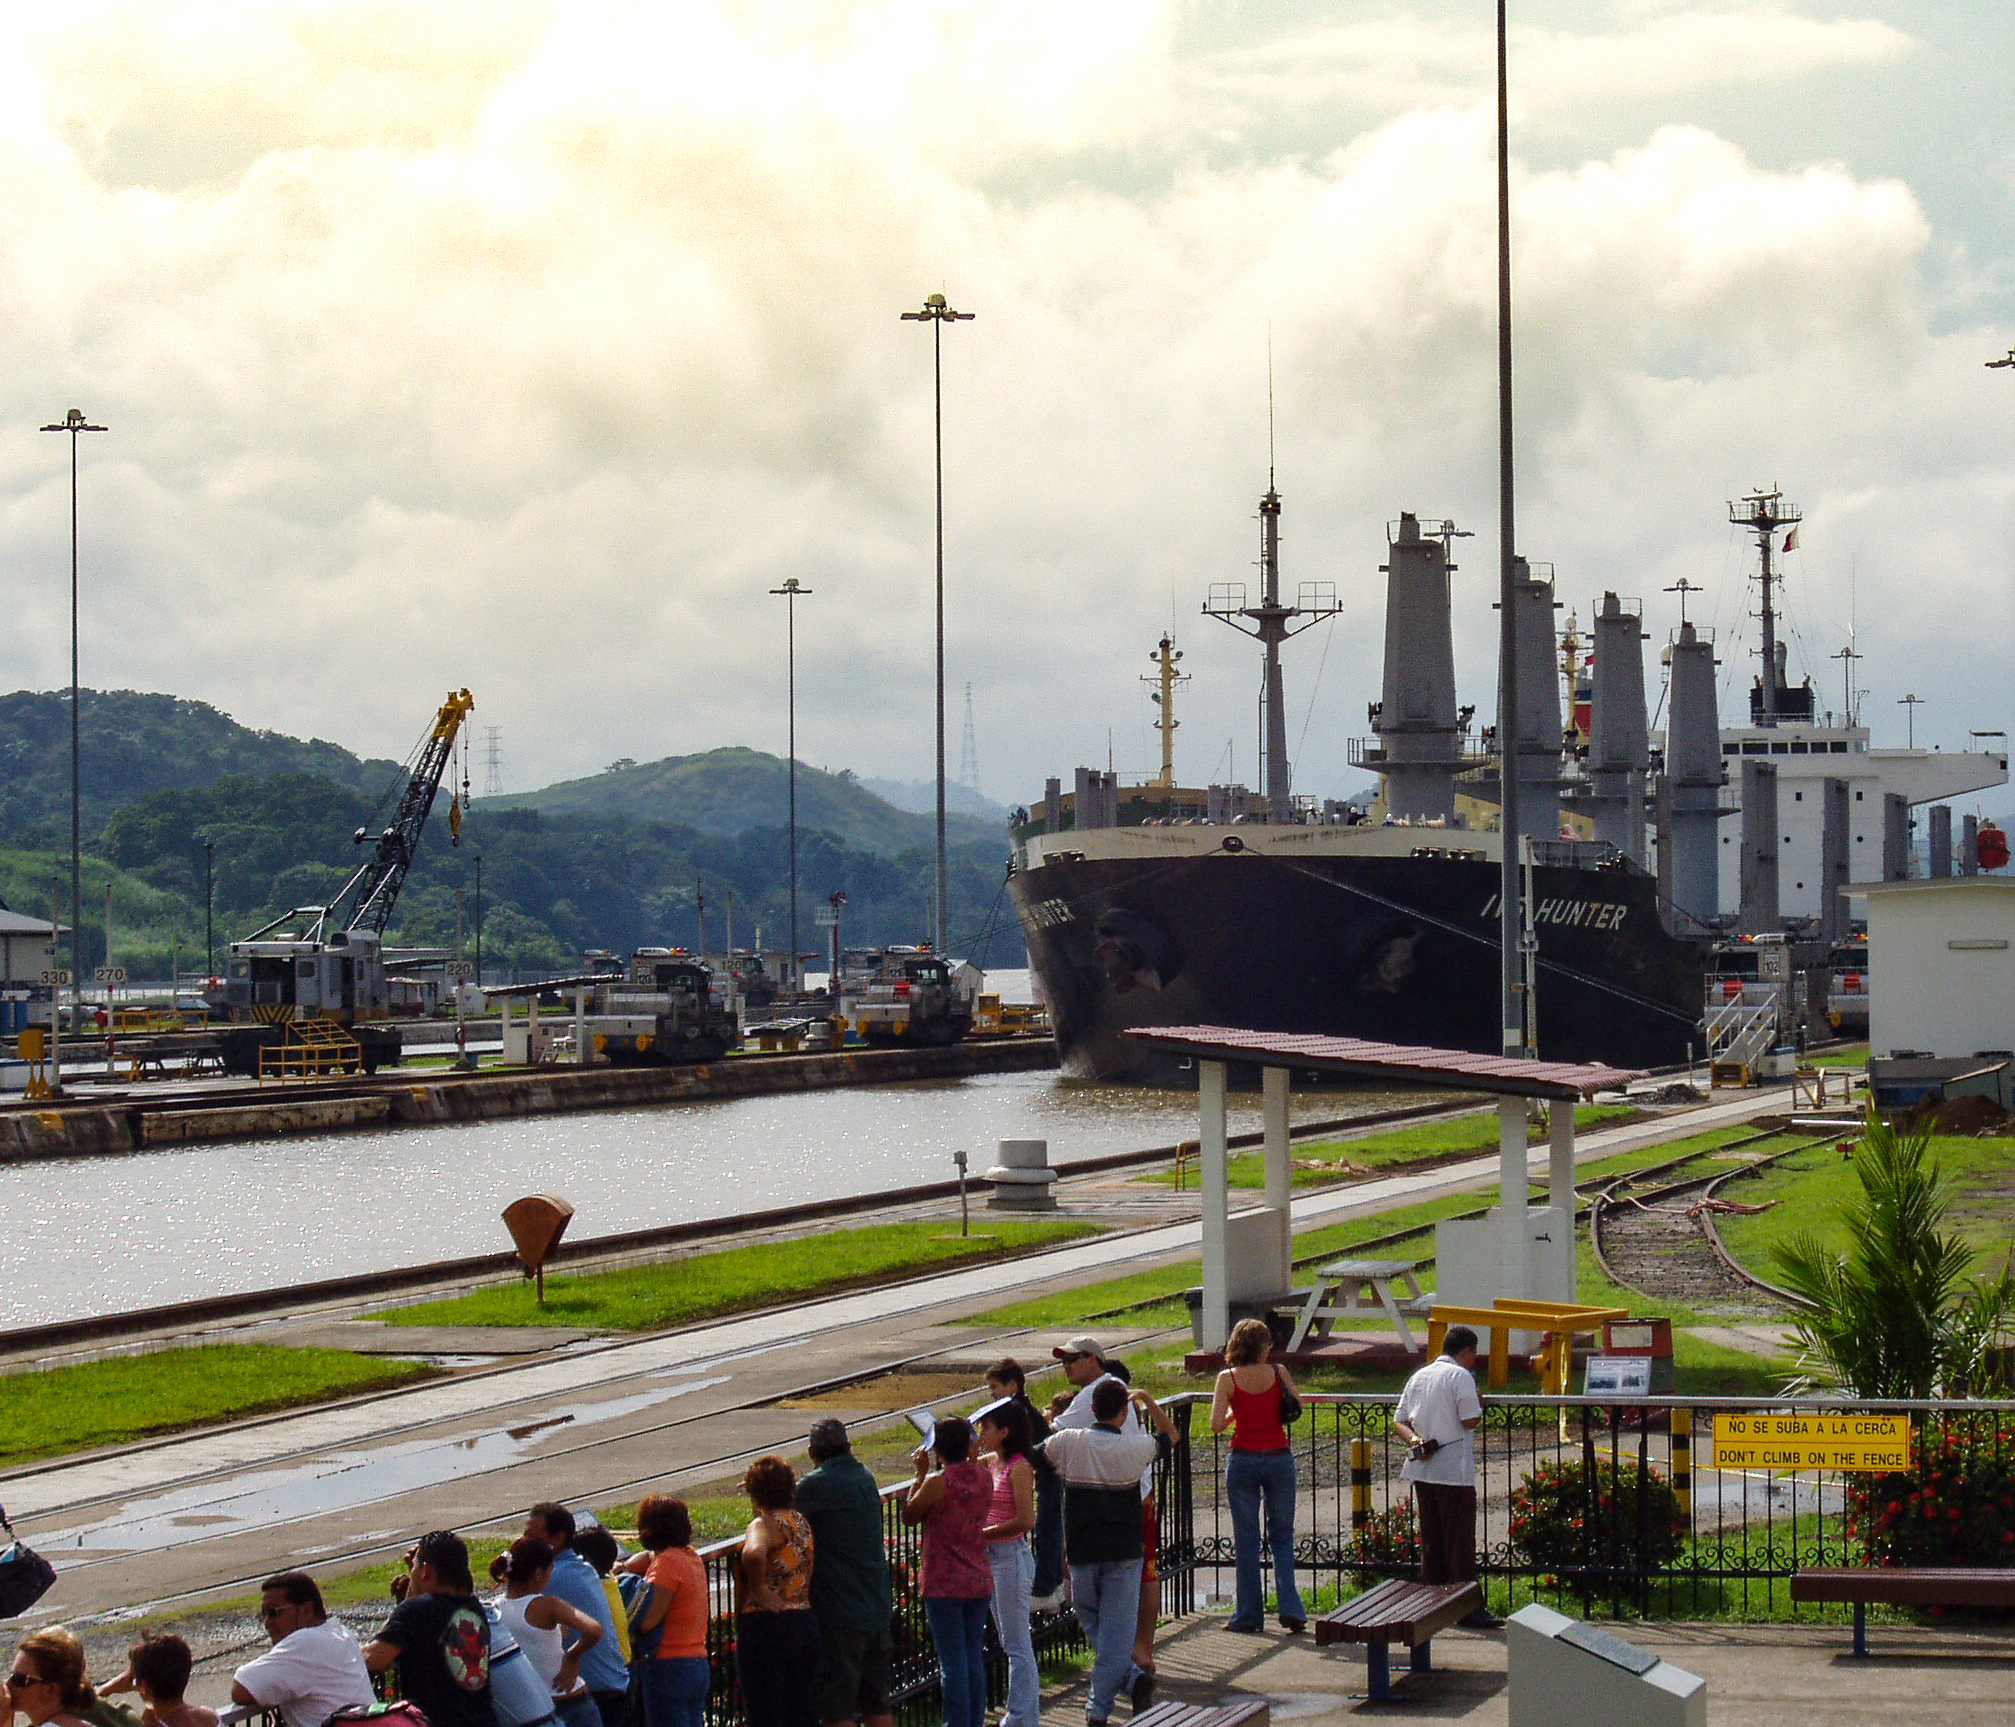 Viewing boats at Panama Canal fun budget-friendly travel experience